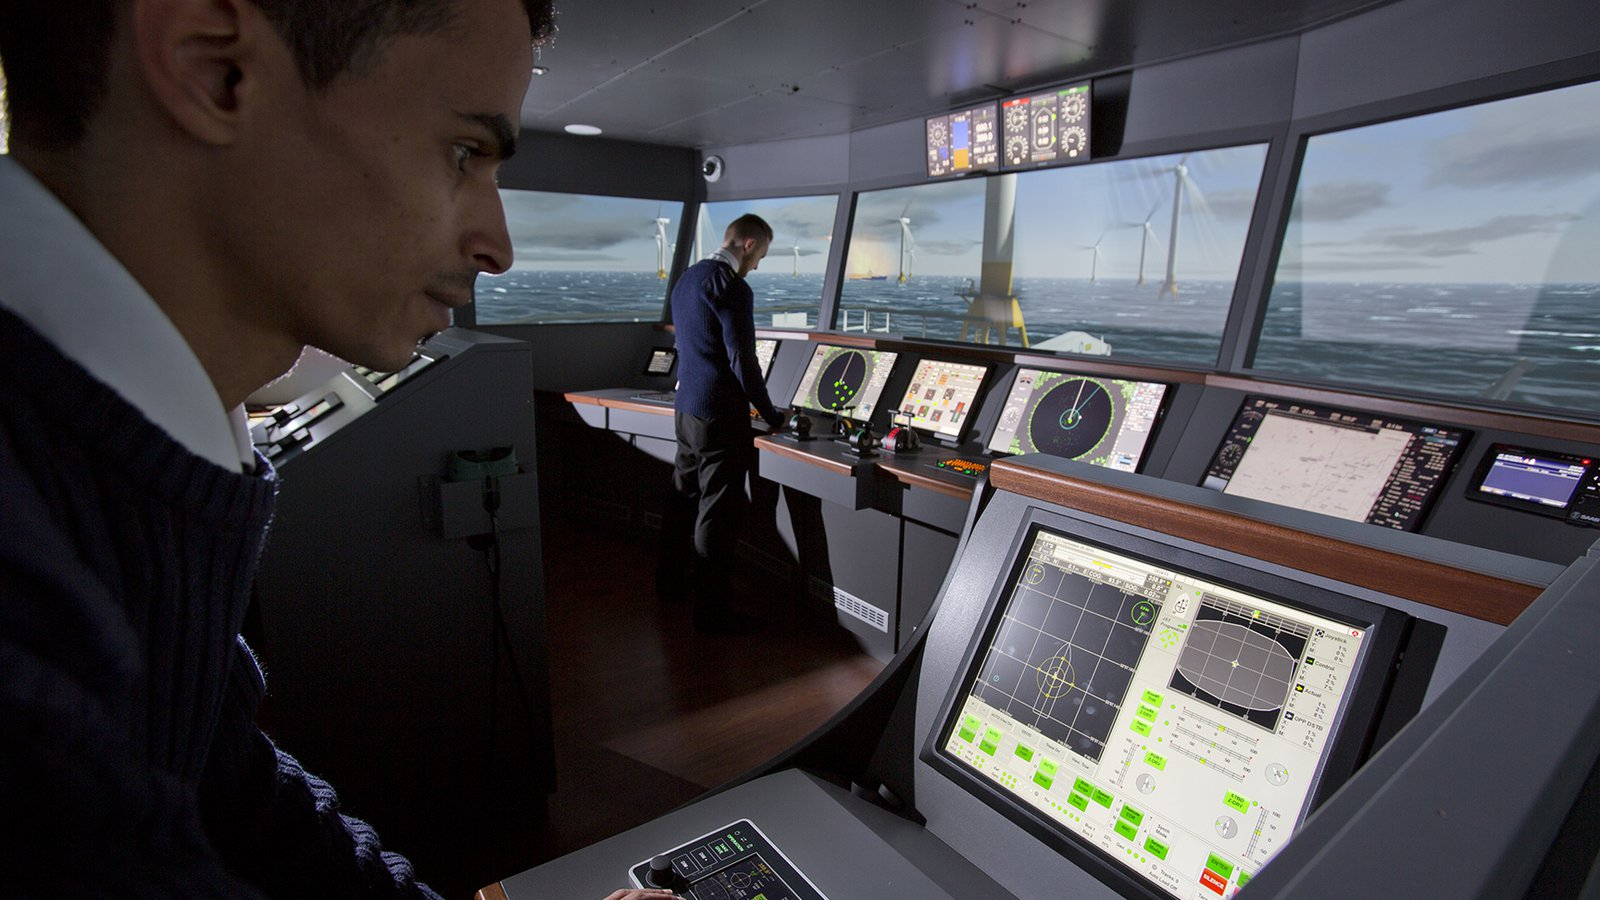 Action must be taken if we are to address UK seafarer